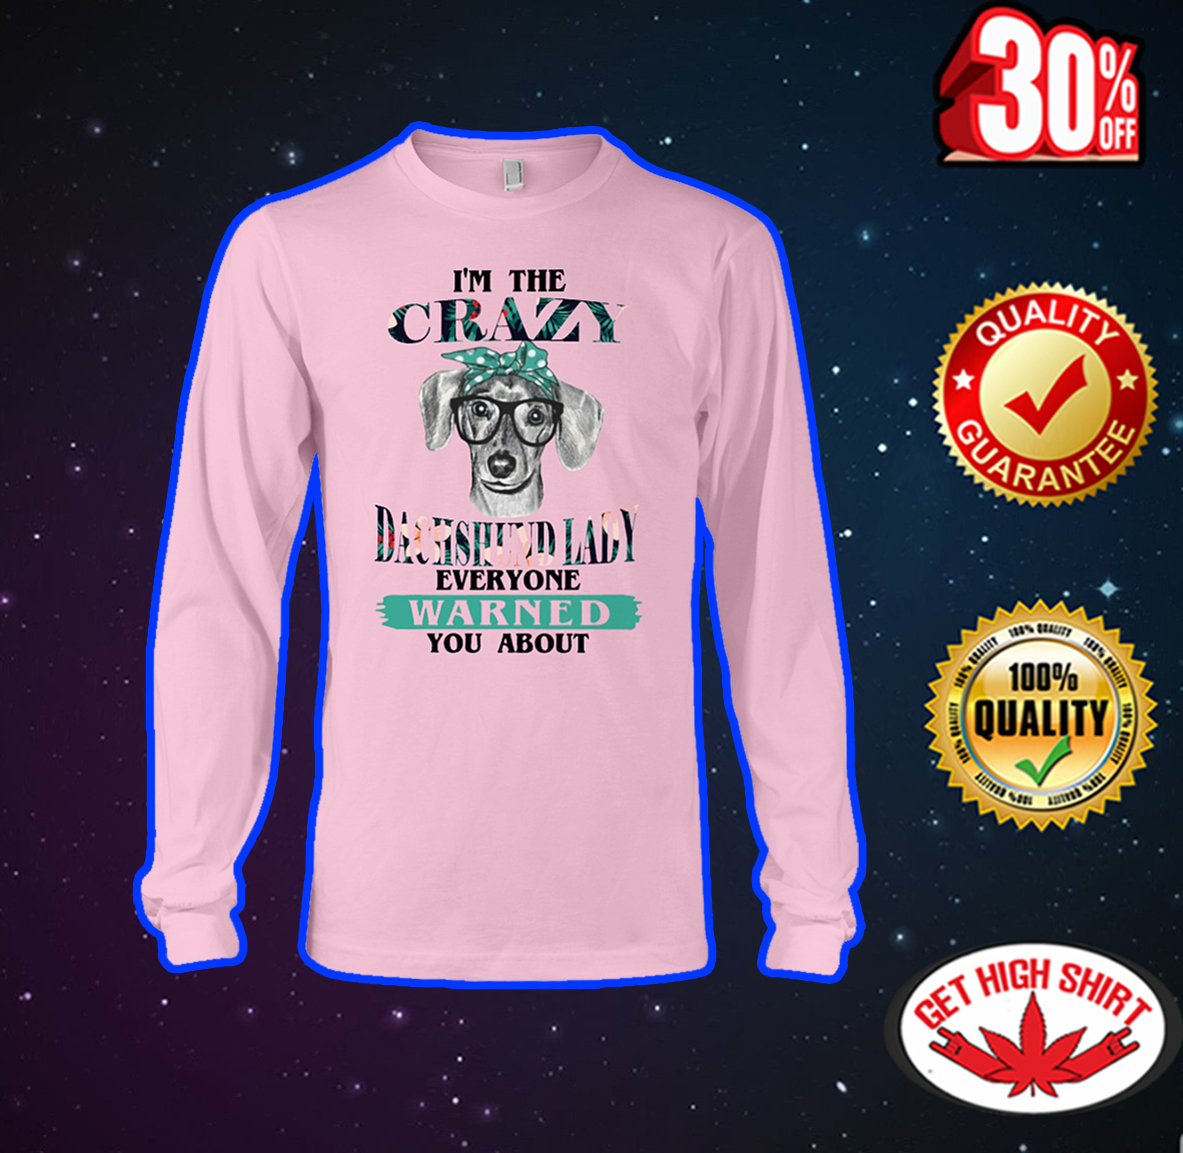 I'm the crazy dachshund lady everyone warned you about long sleeve tee